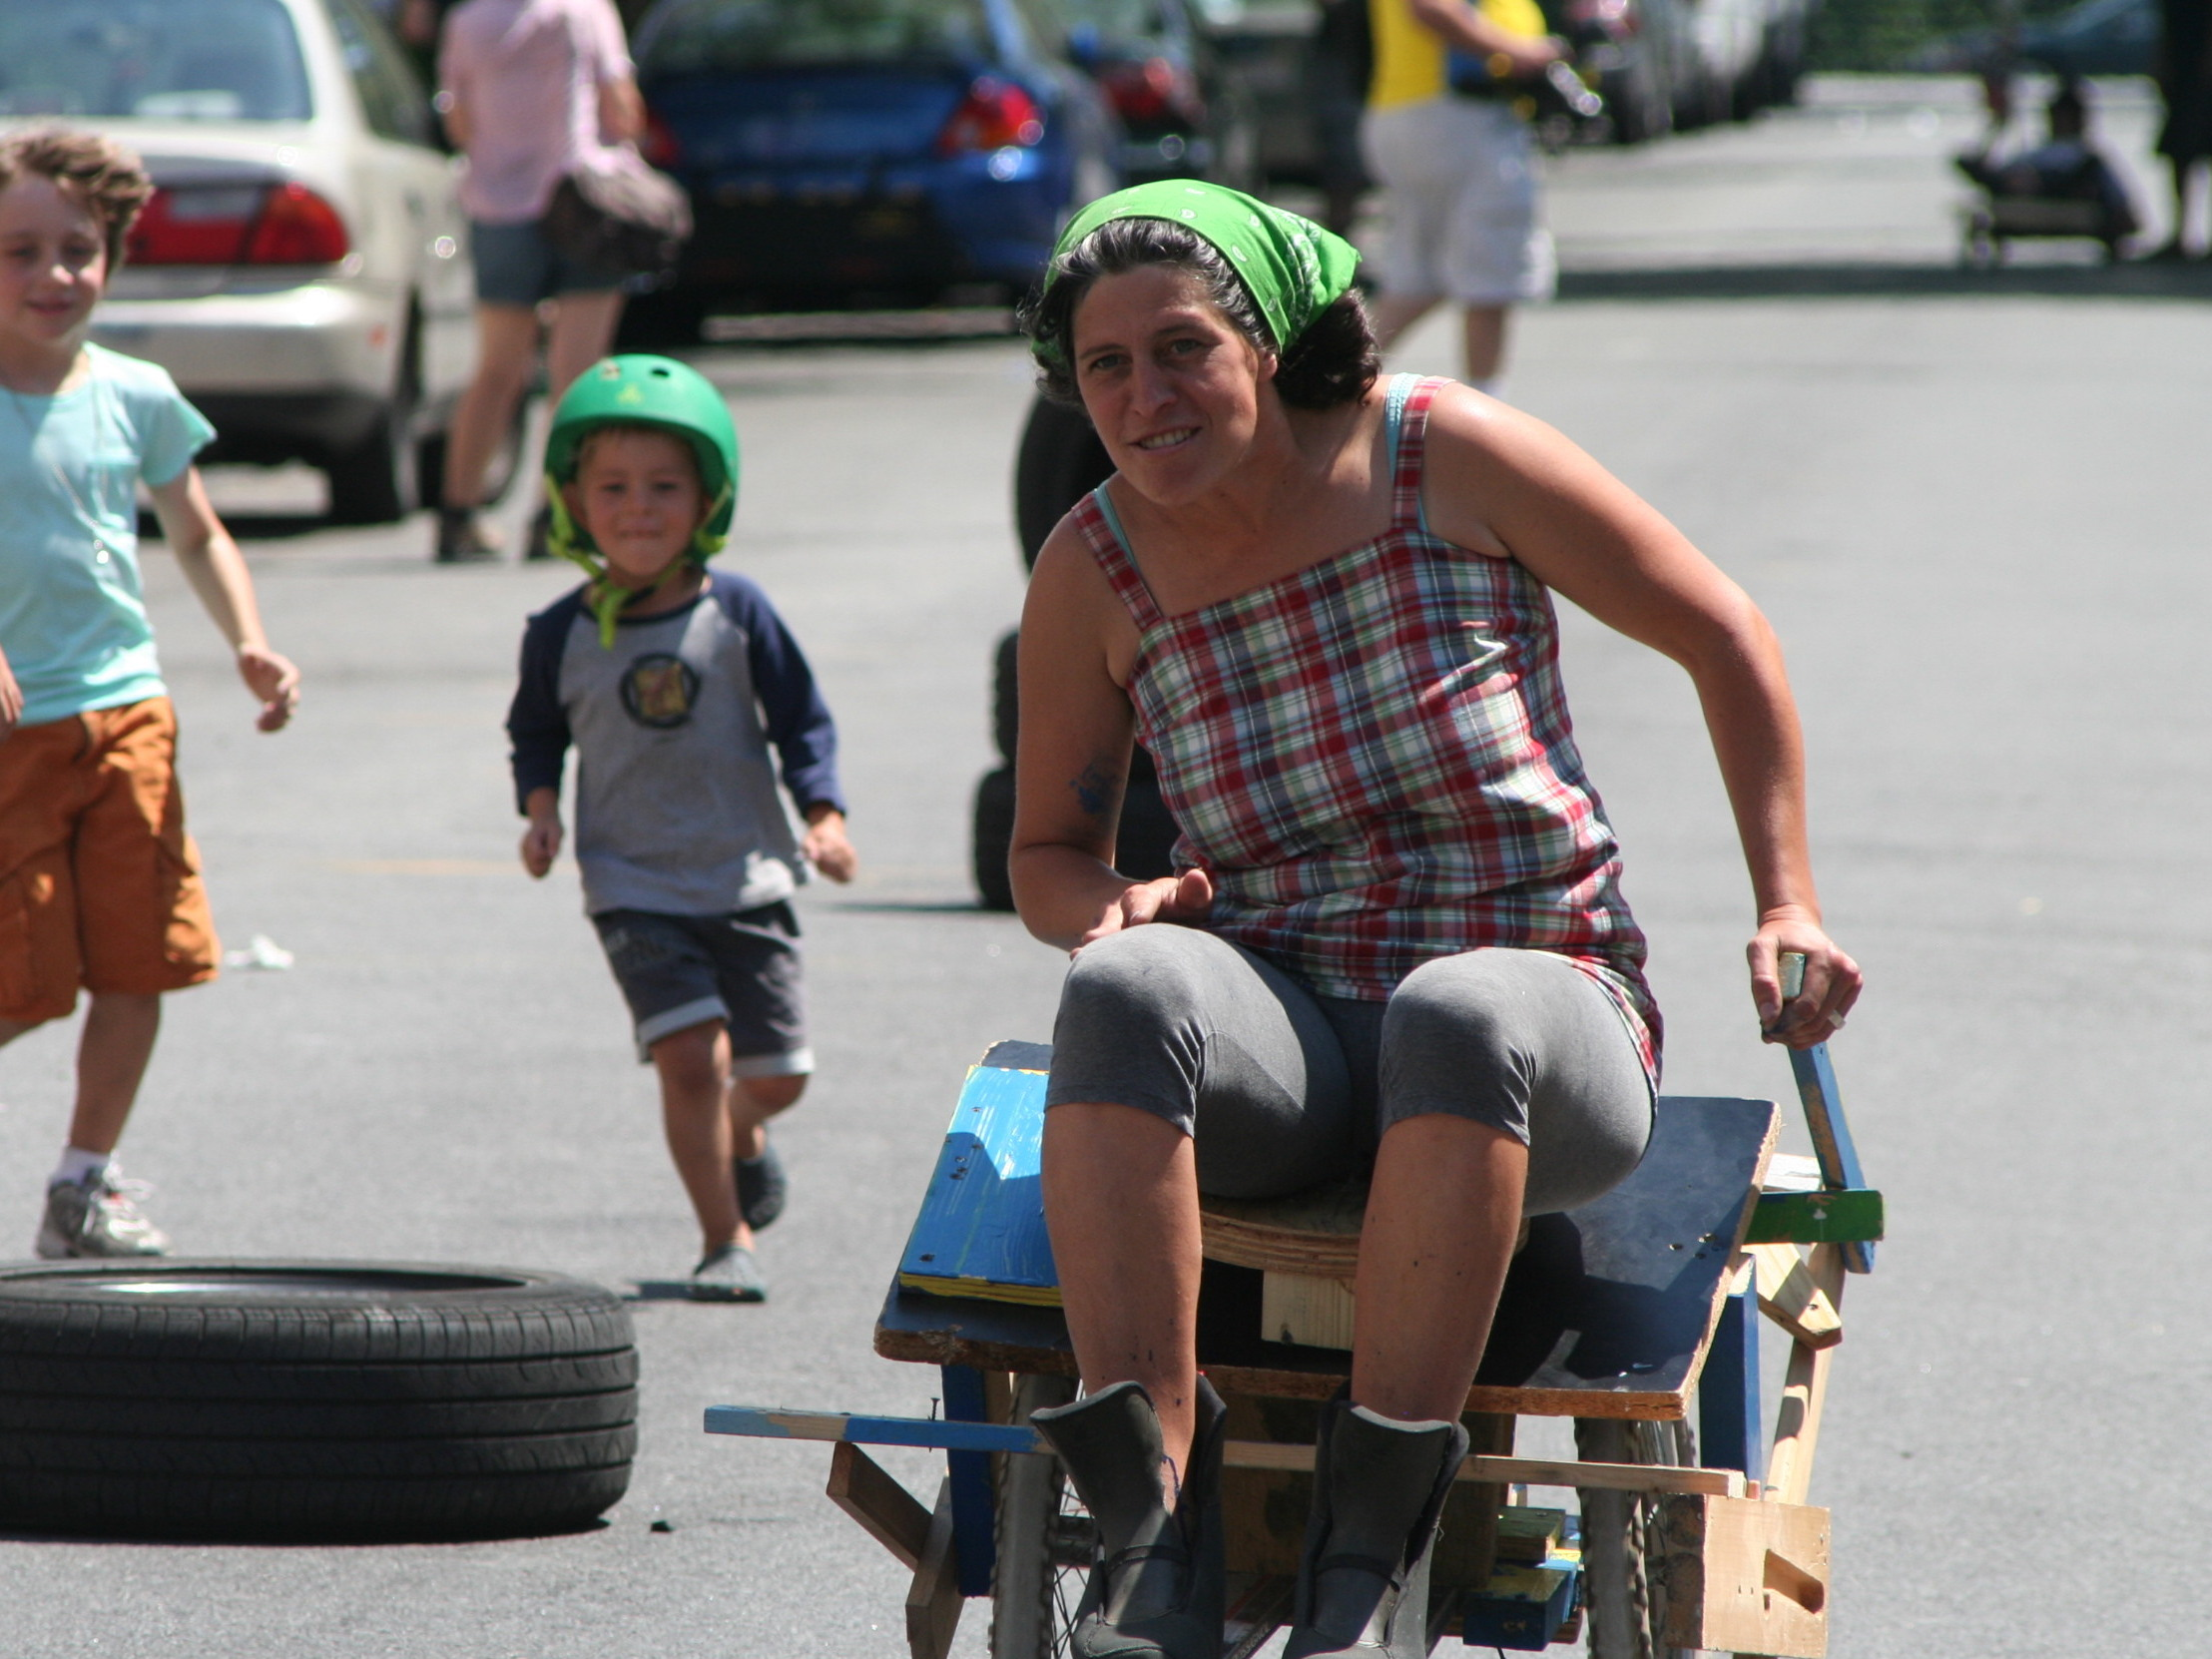 Soapbox Racer Out of FoundMaterial